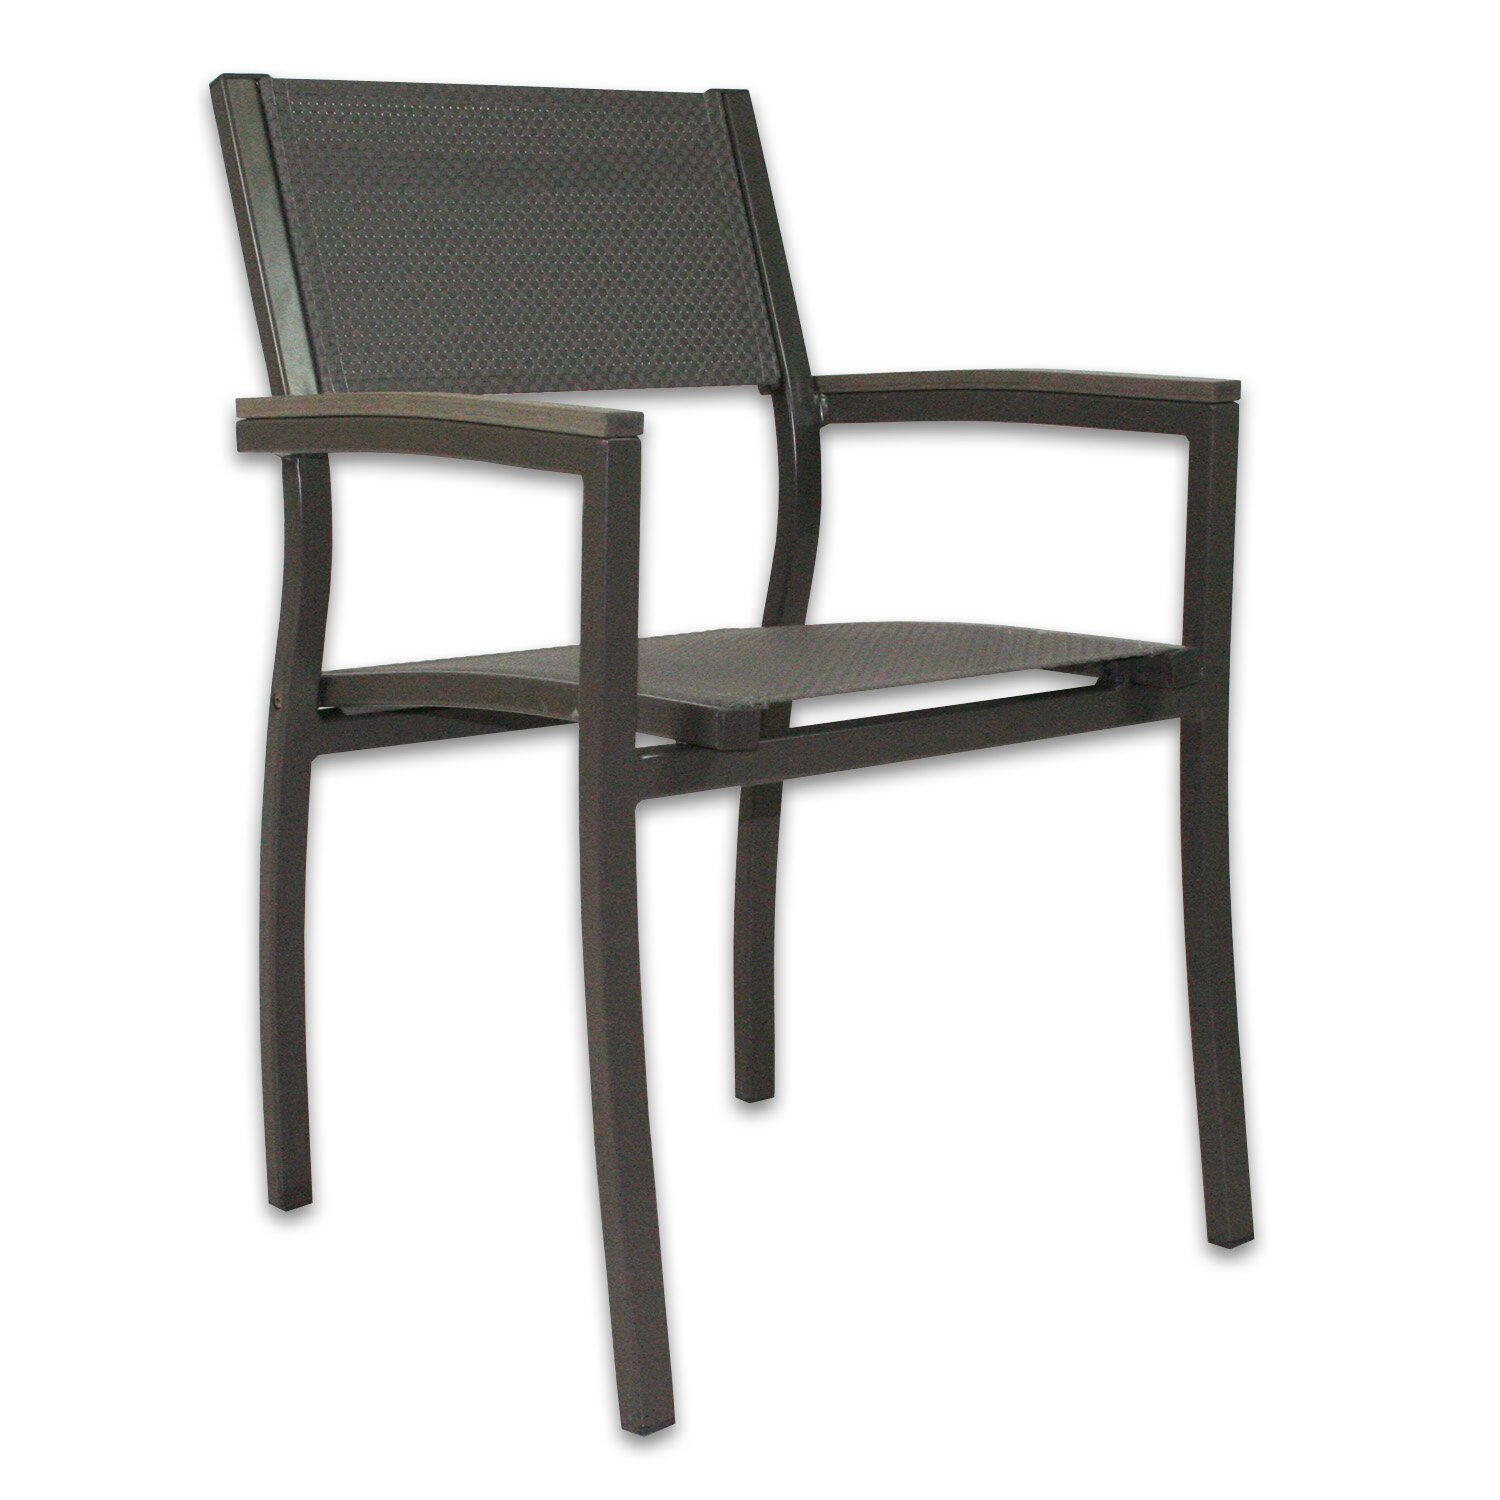 Patio Heaven Riviera Dining Chair Reviews Wayfair